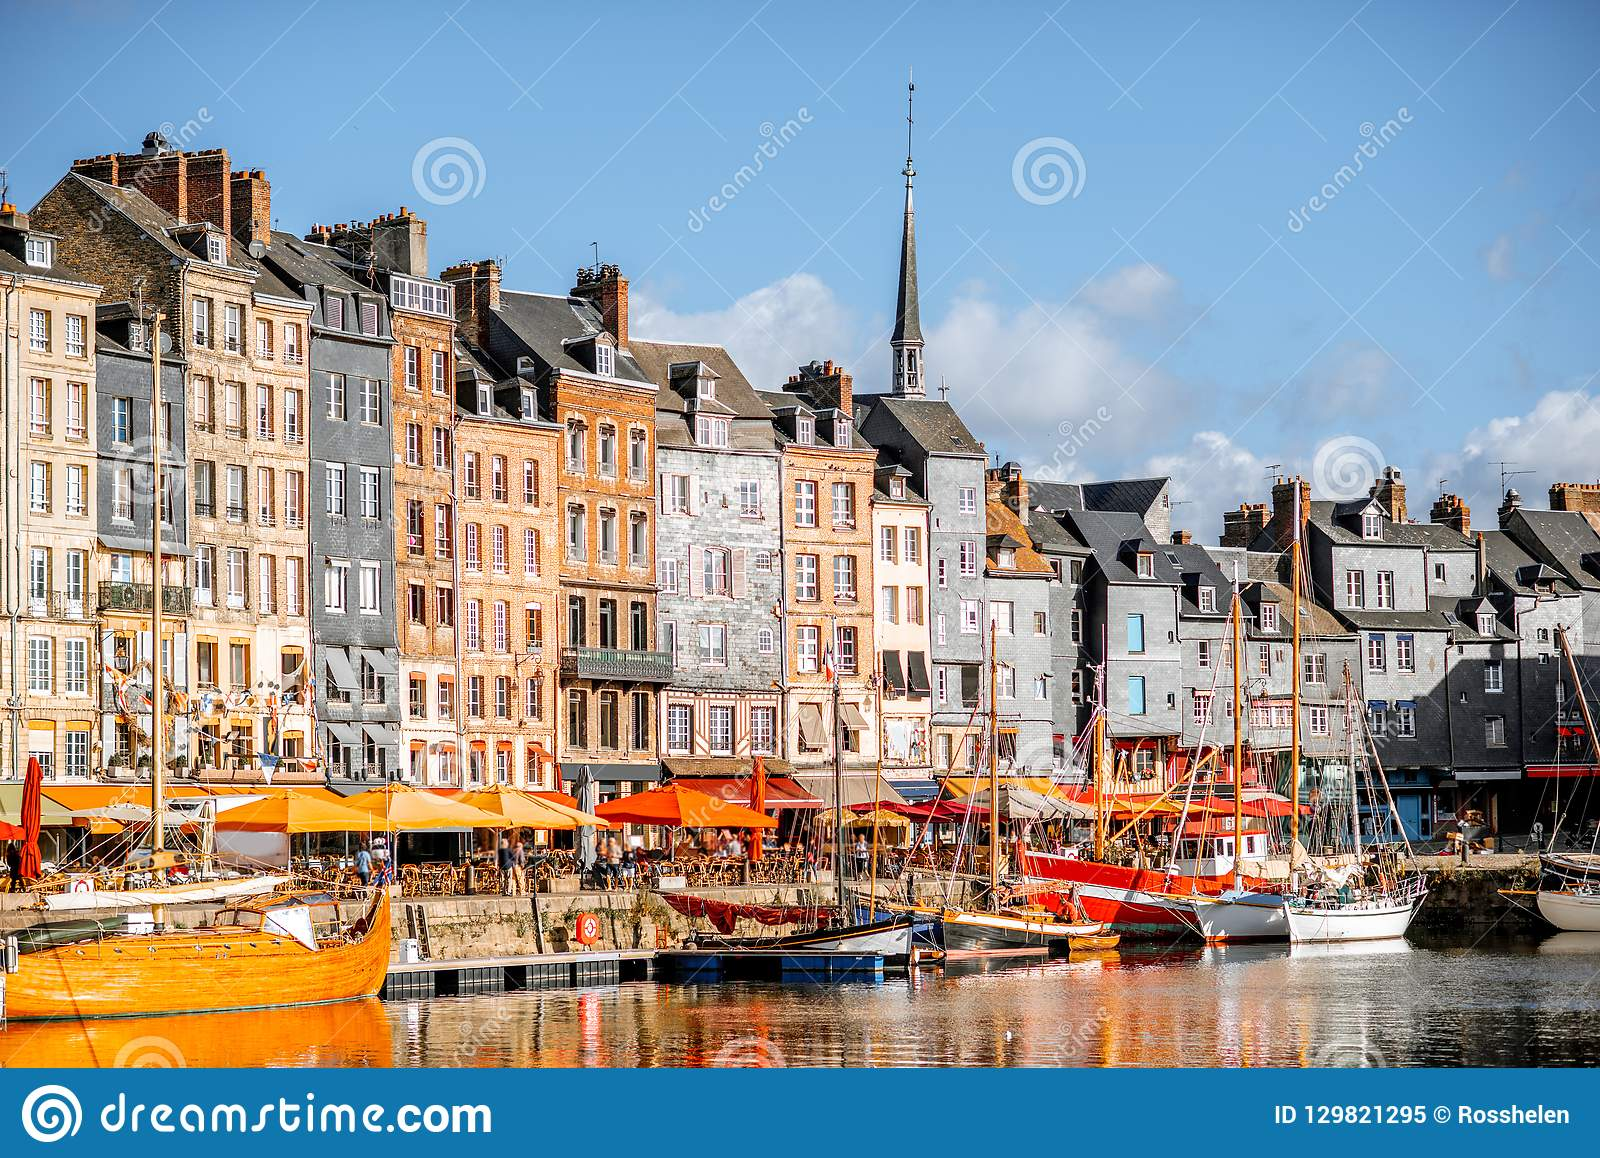 Waterfront in Honfleur town, France